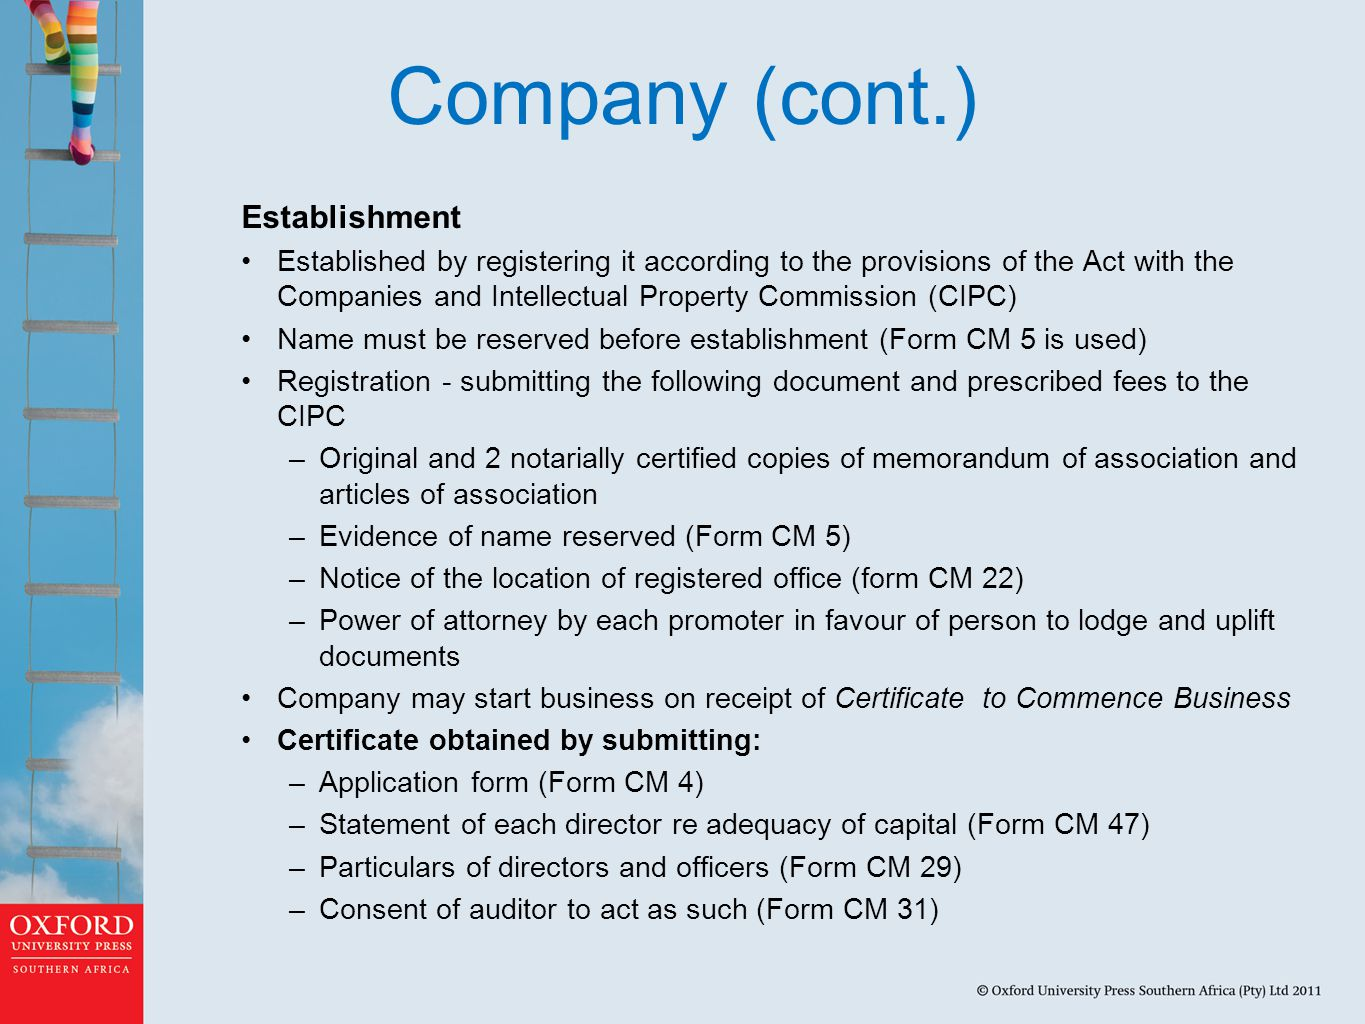 Company (cont.) Establishment Established by registering it according to the provisions of the Act with the Companies and Intellectual Property Commission (CIPC) Name must be reserved before establishment (Form CM 5 is used) Registration - submitting the following document and prescribed fees to the CIPC –Original and 2 notarially certified copies of memorandum of association and articles of association –Evidence of name reserved (Form CM 5) –Notice of the location of registered office (form CM 22) –Power of attorney by each promoter in favour of person to lodge and uplift documents Company may start business on receipt of Certificate to Commence Business Certificate obtained by submitting: –Application form (Form CM 4) –Statement of each director re adequacy of capital (Form CM 47) –Particulars of directors and officers (Form CM 29) –Consent of auditor to act as such (Form CM 31)